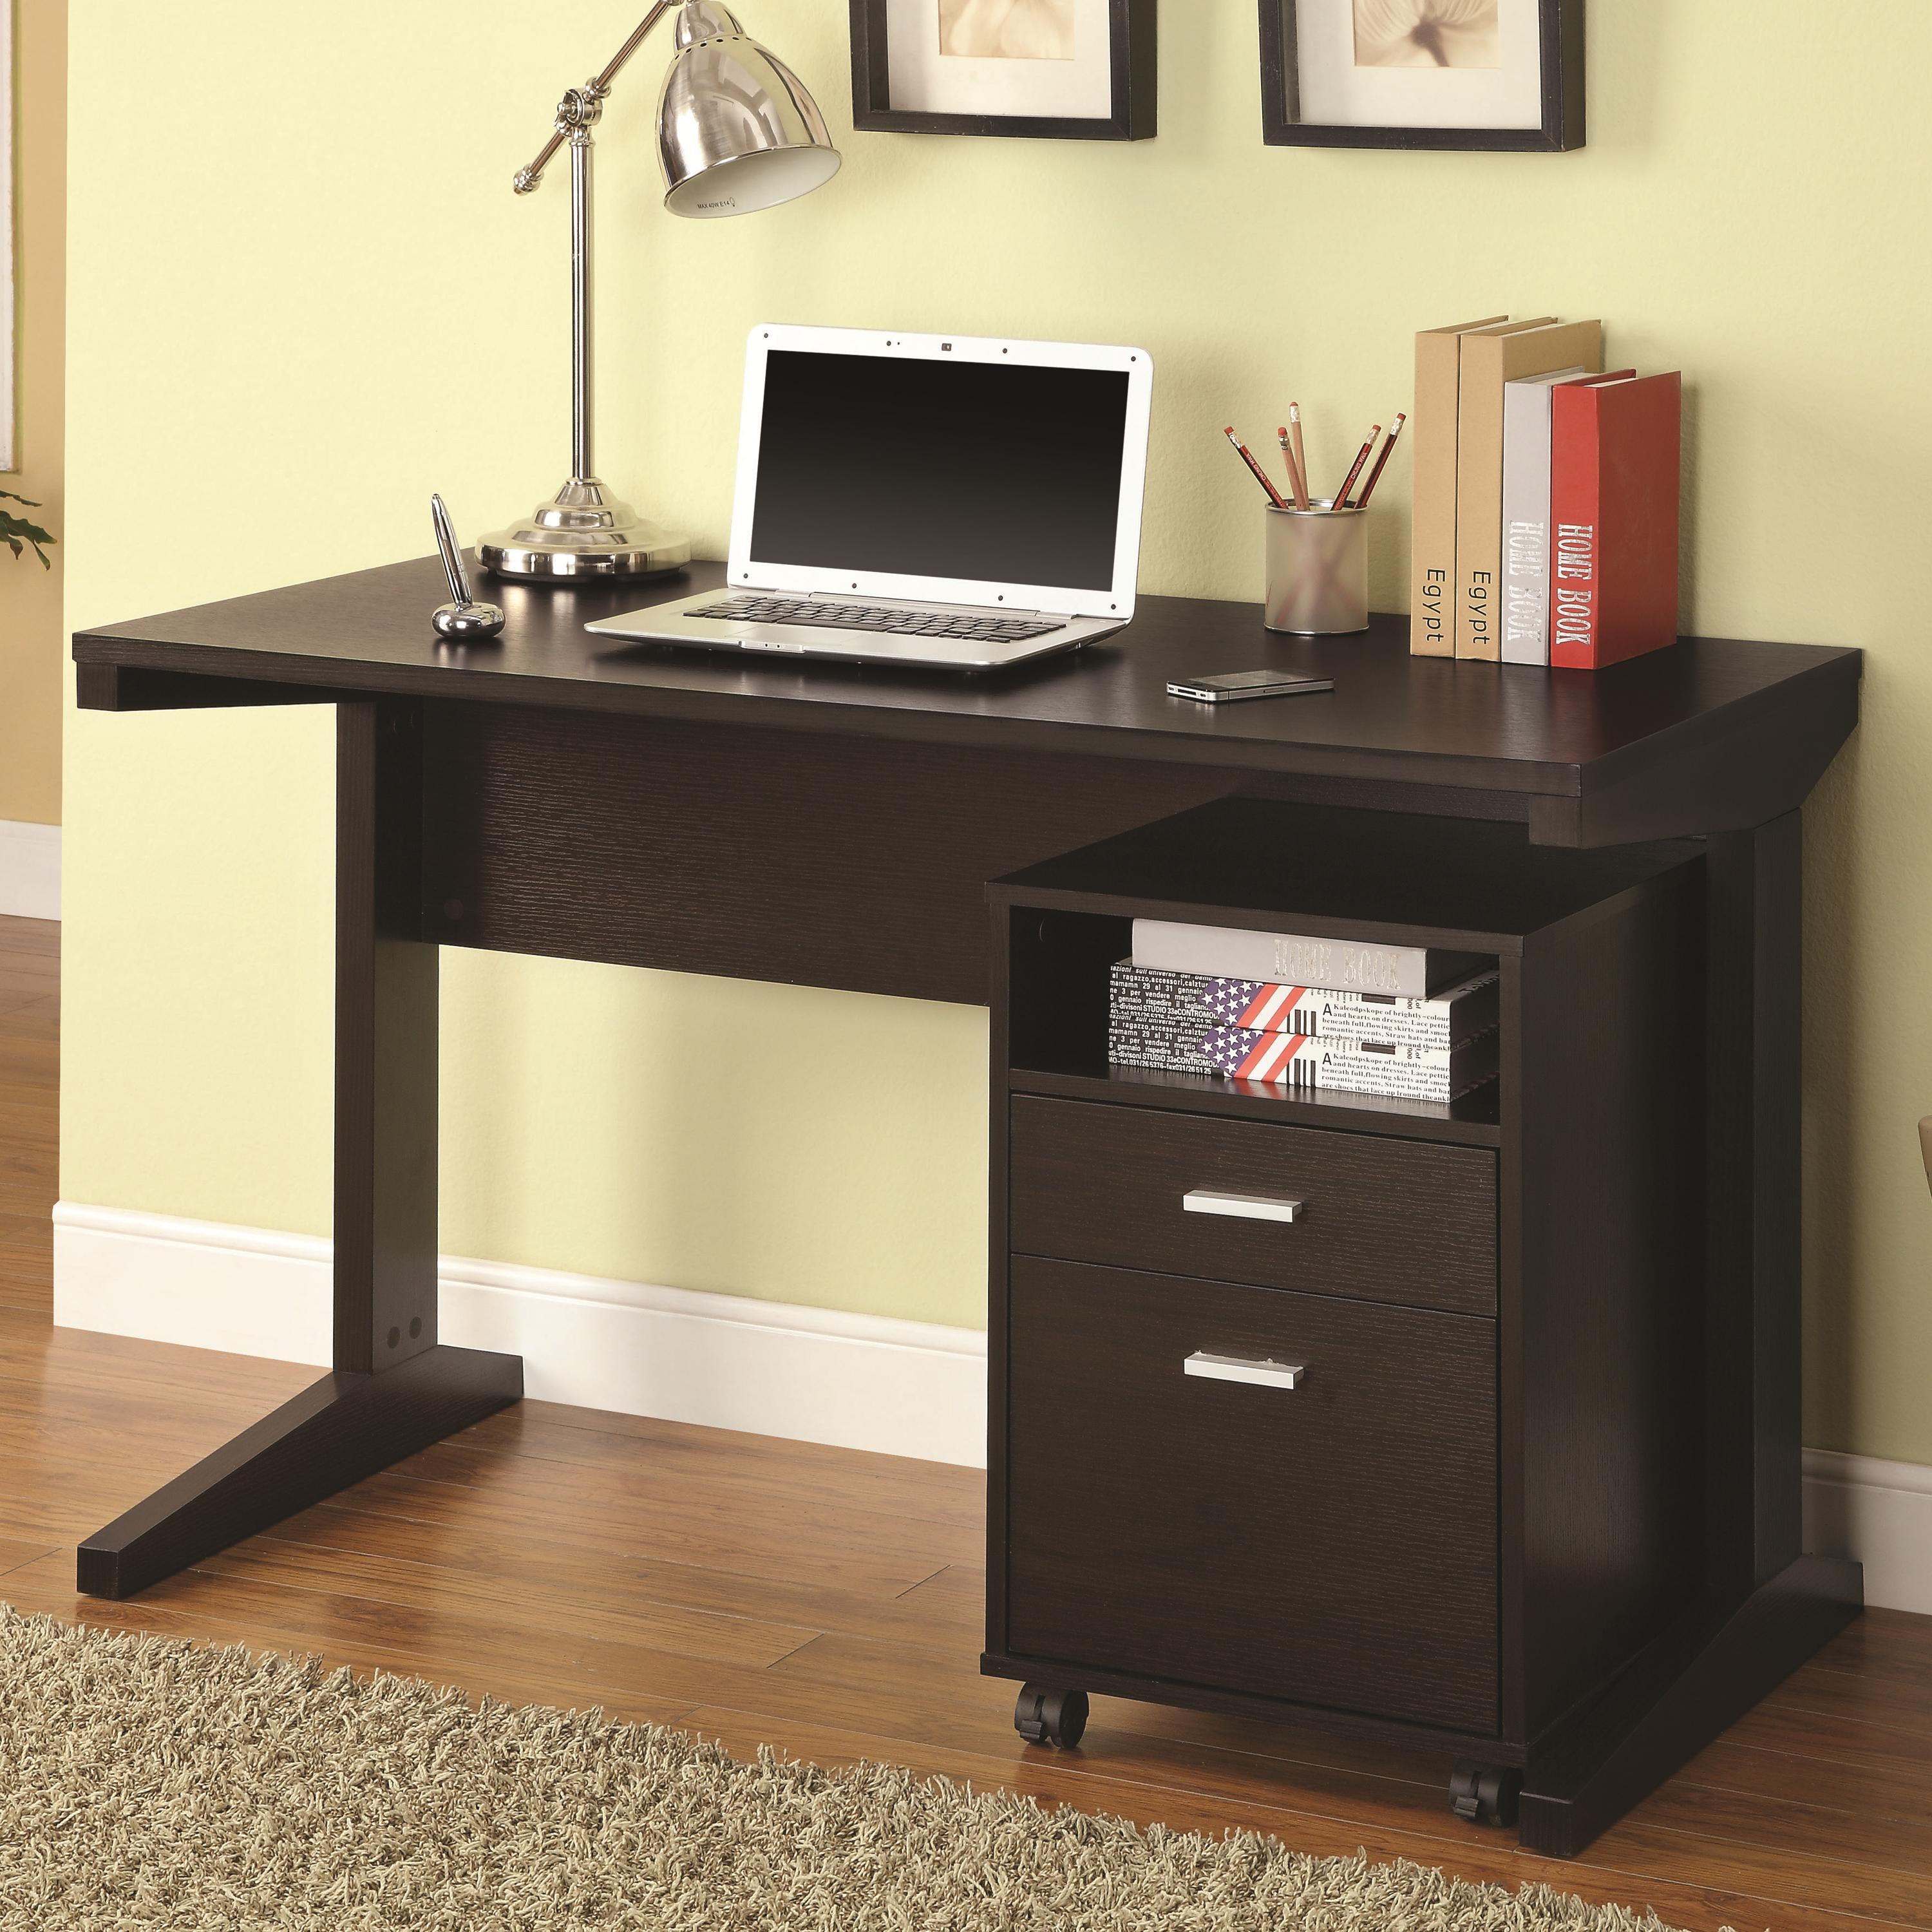 Rolling Filing Cabinets 2 Piece Desk Set With Rolling File Cabinet By Coaster At Value City Furniture